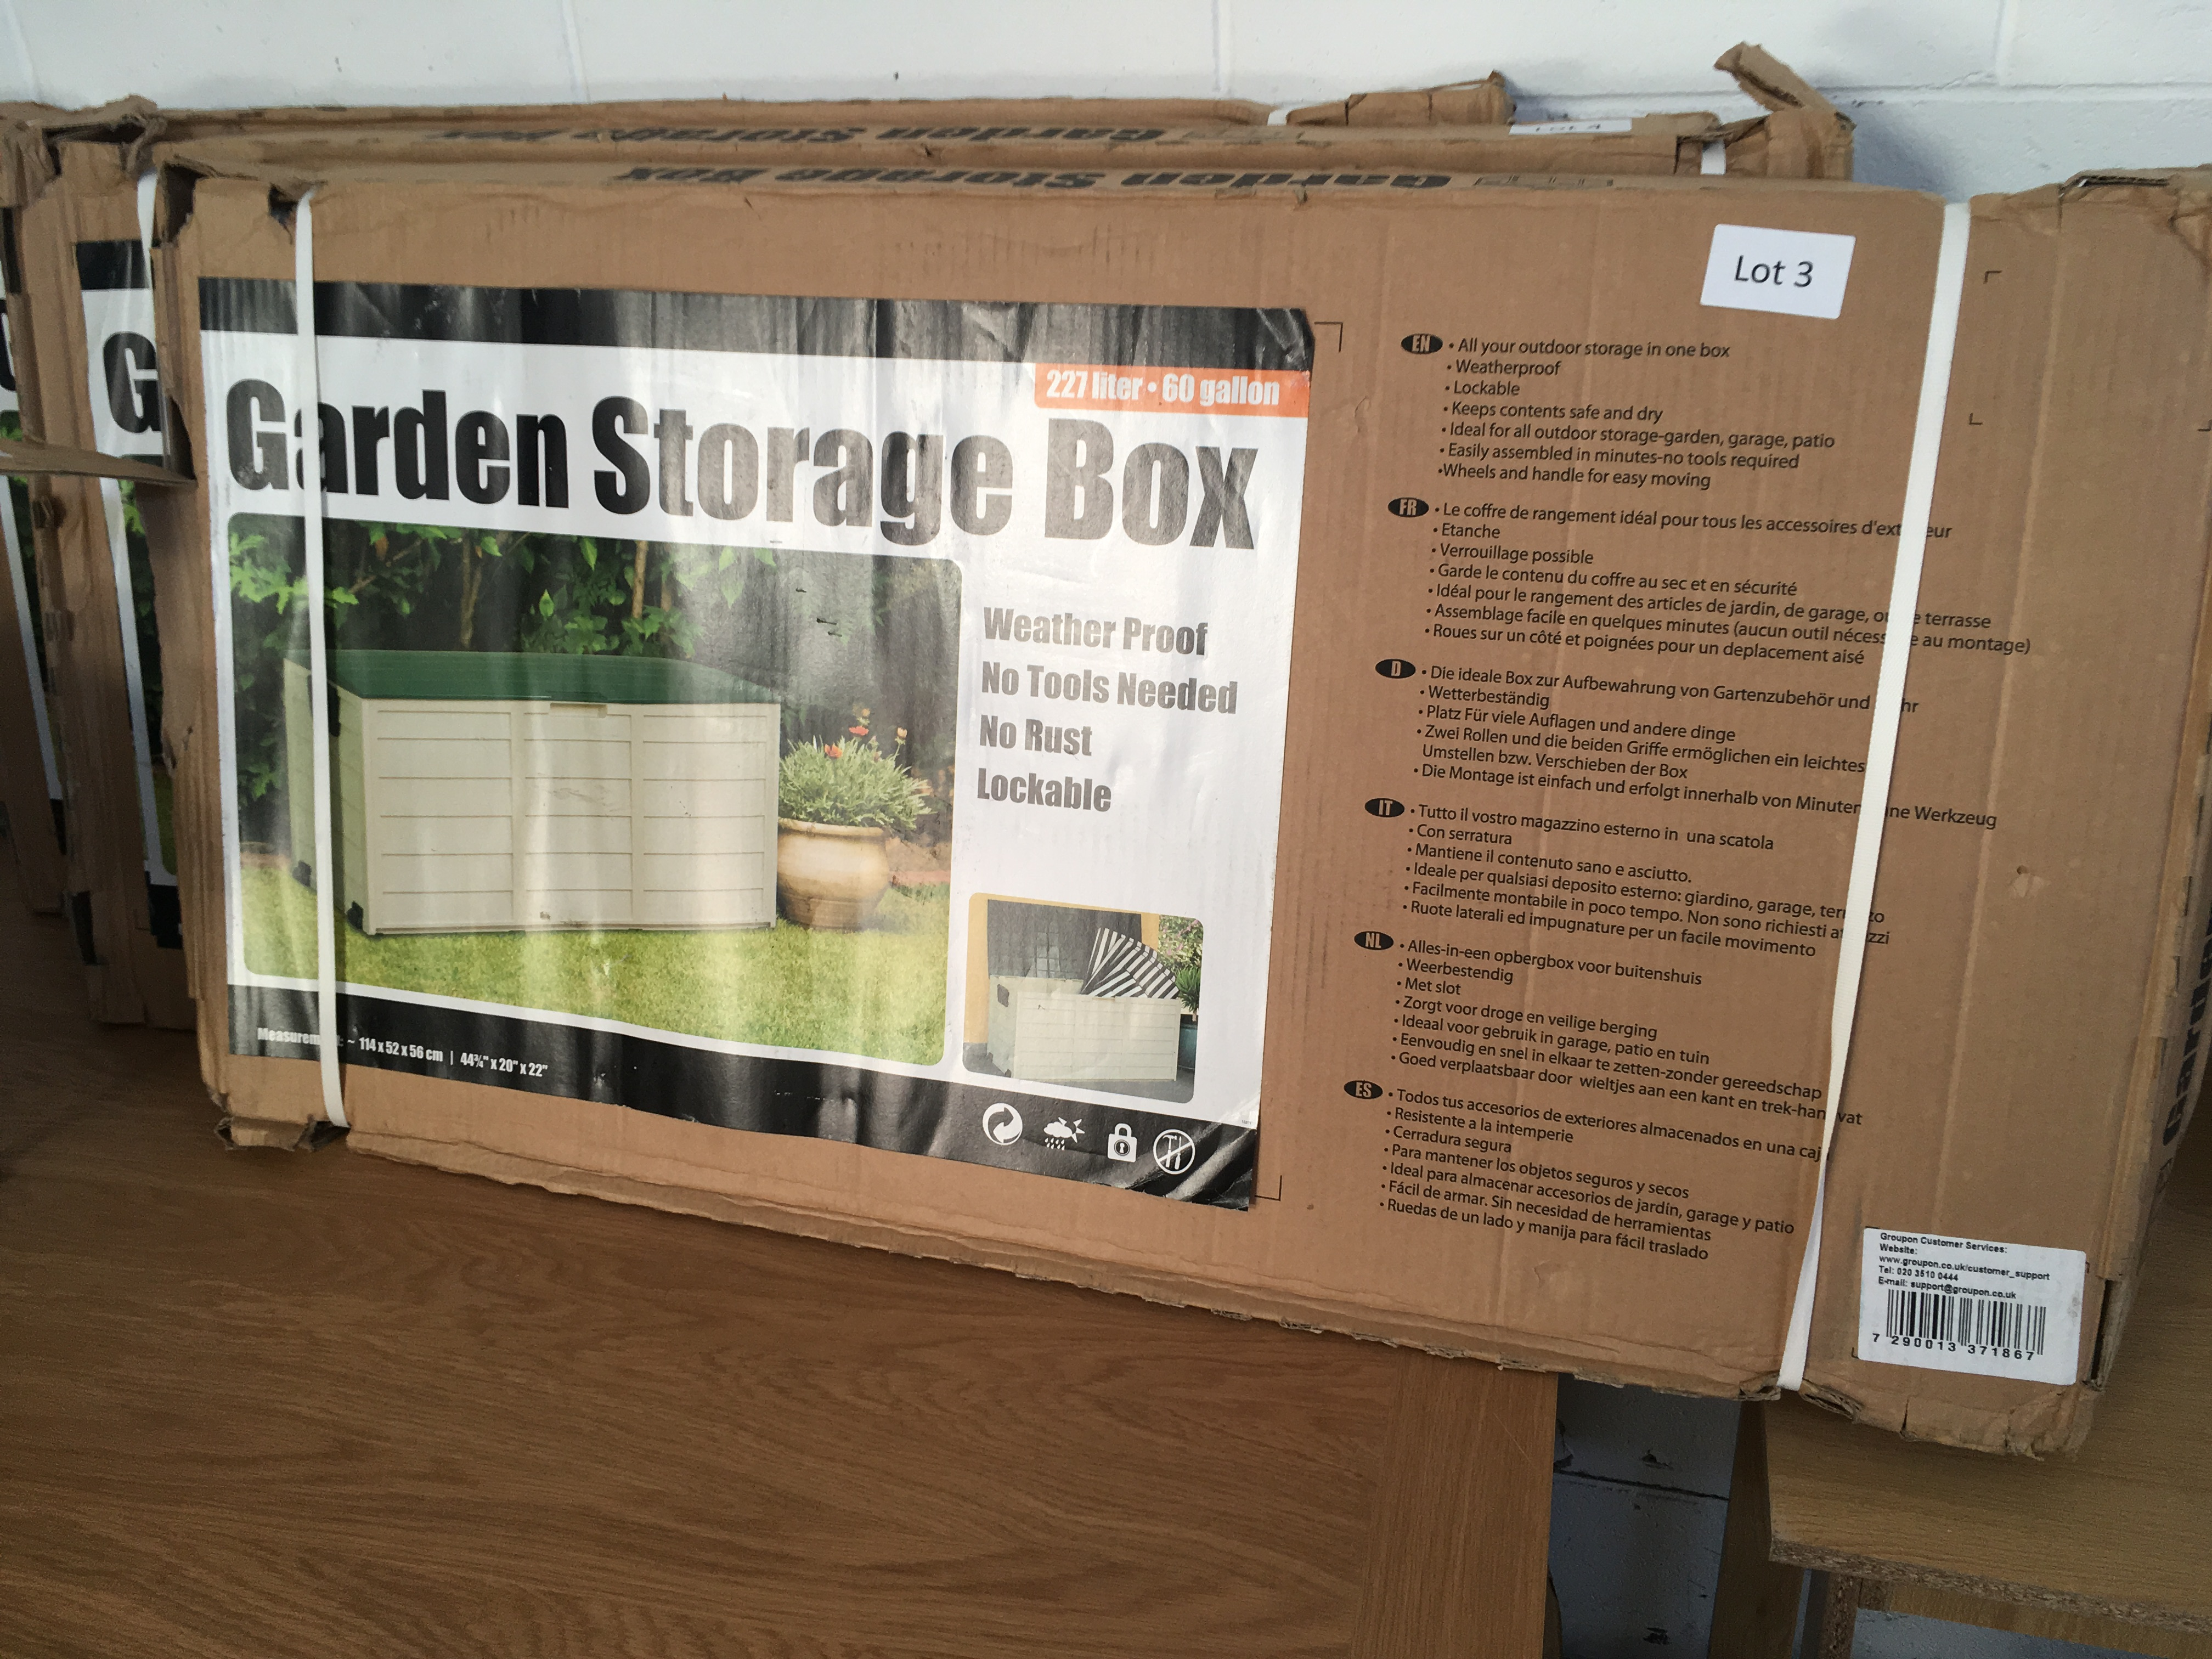 Lot 3 - 227 litre garden storage box. Bad packaging.